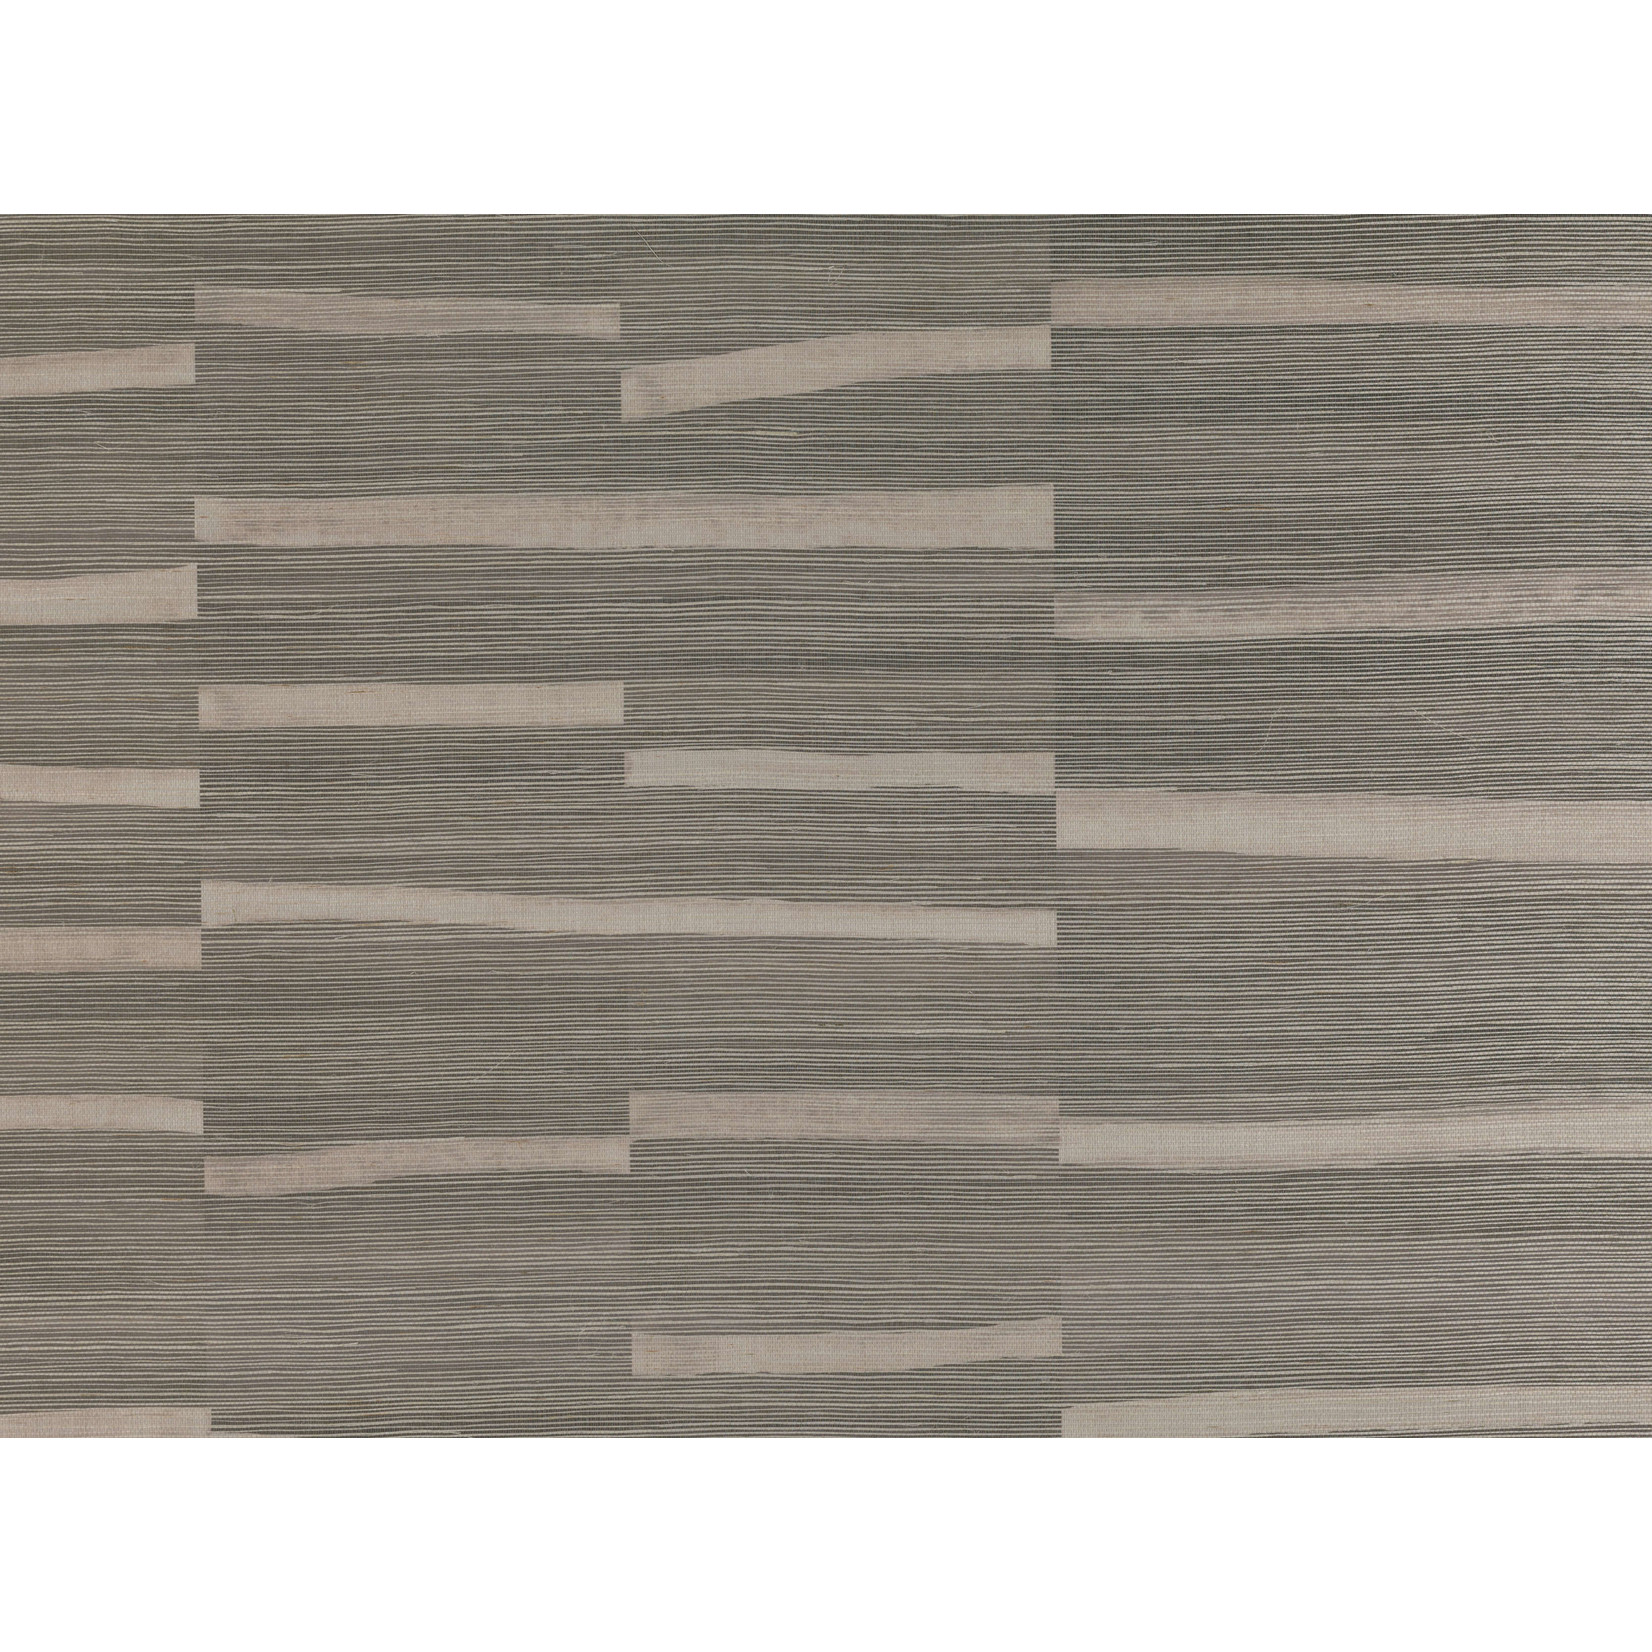 Mark Alexander Collage Handcrafted Wallcoverings | Savanna Stone